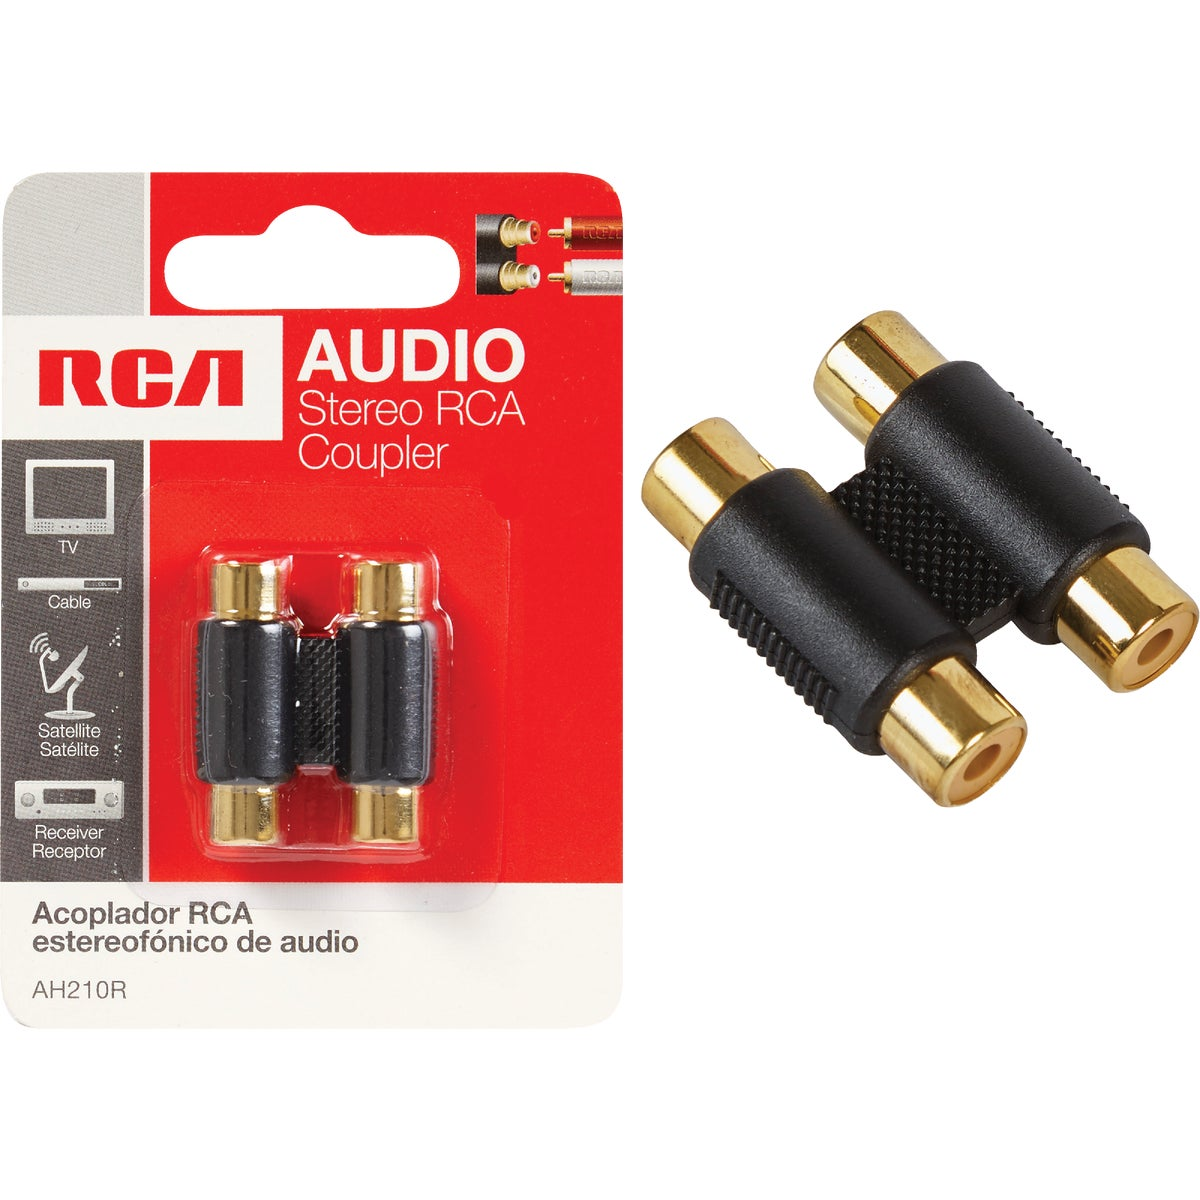 RCA CONNECTOR - AH210R by Audiovox Accessories